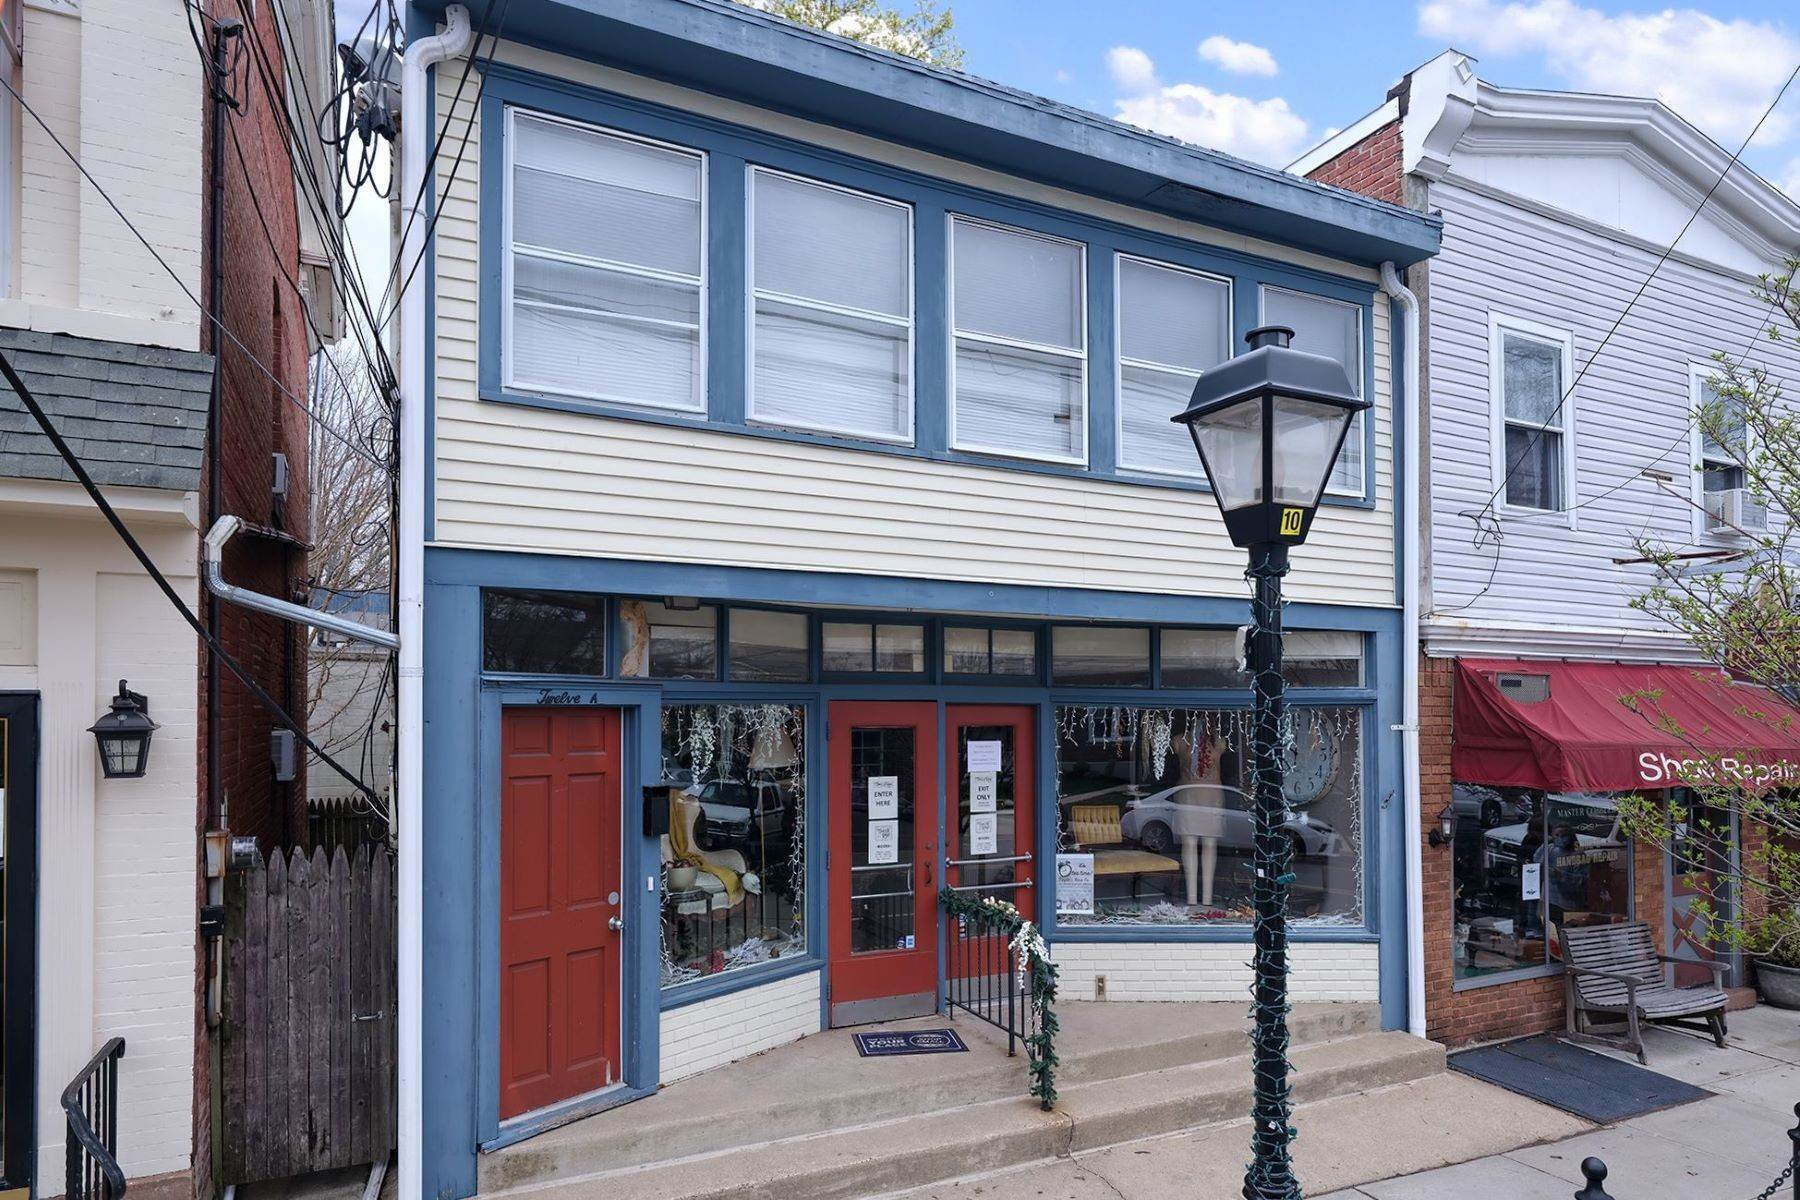 Property for Sale at Two Multi-Use Buildings In The Heart Of Pennington 12 North Main Street, Pennington, New Jersey 08534 United States